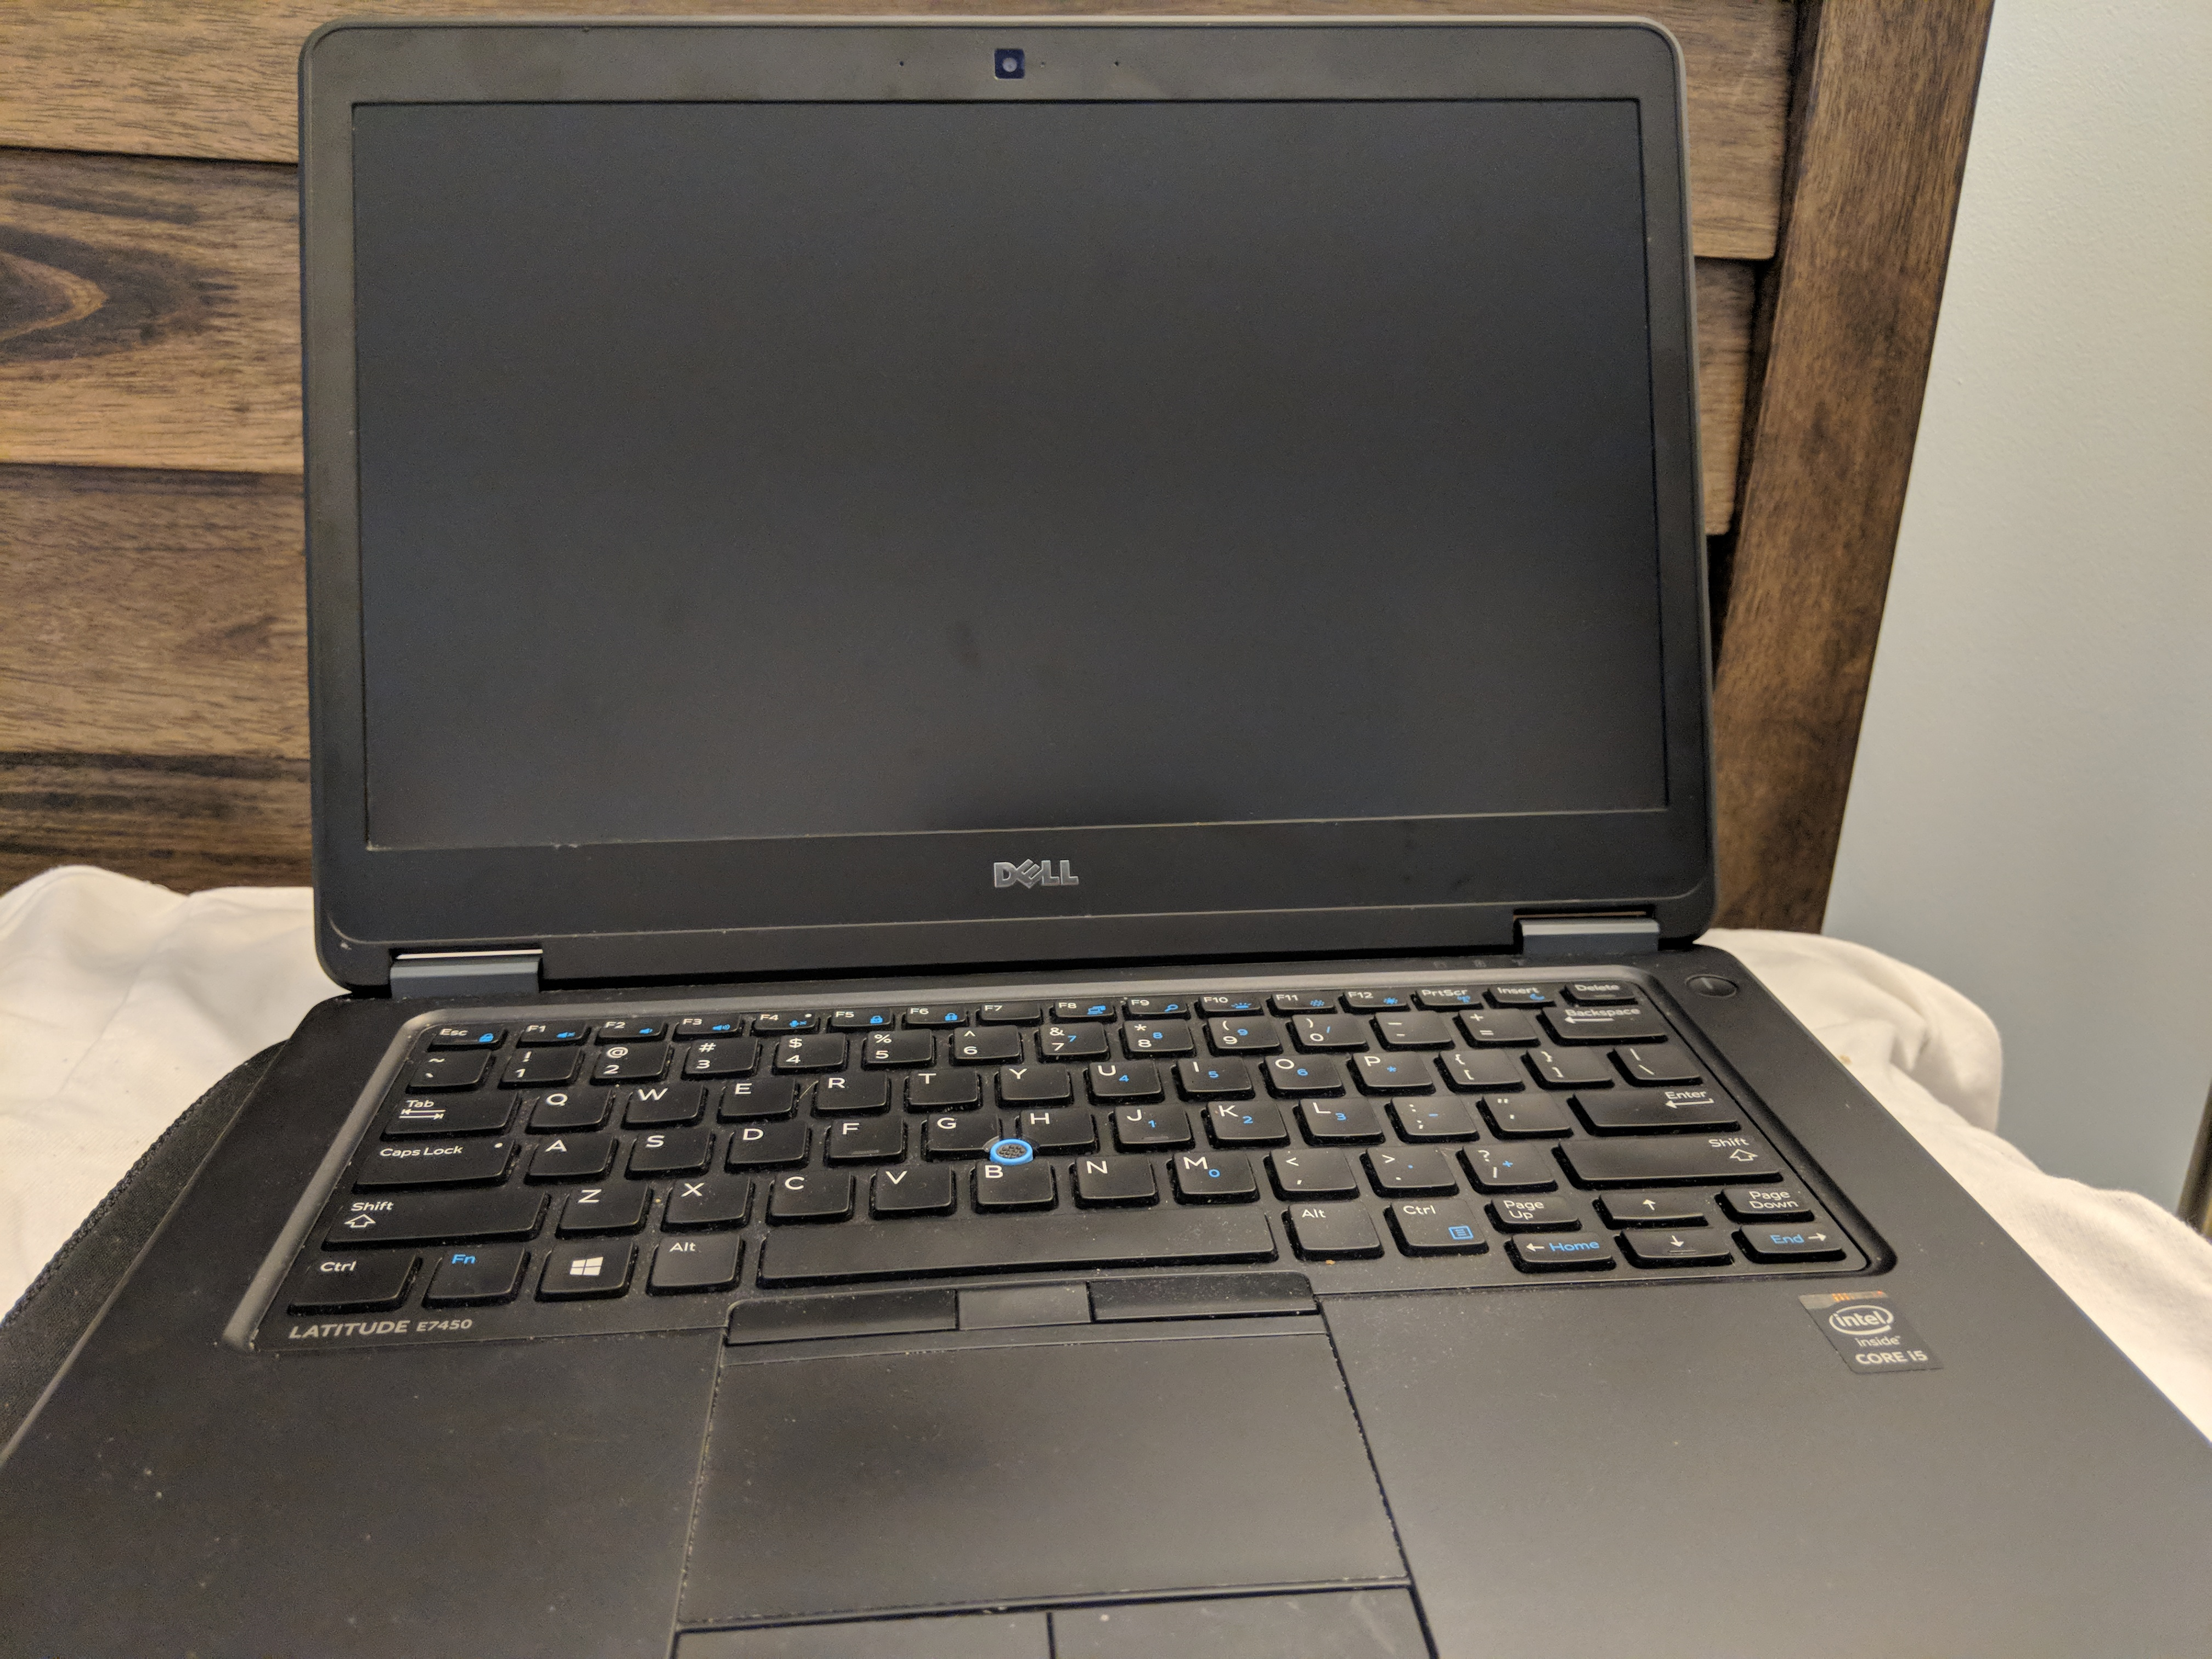 Refurbished Dell Latitude Laptop Review